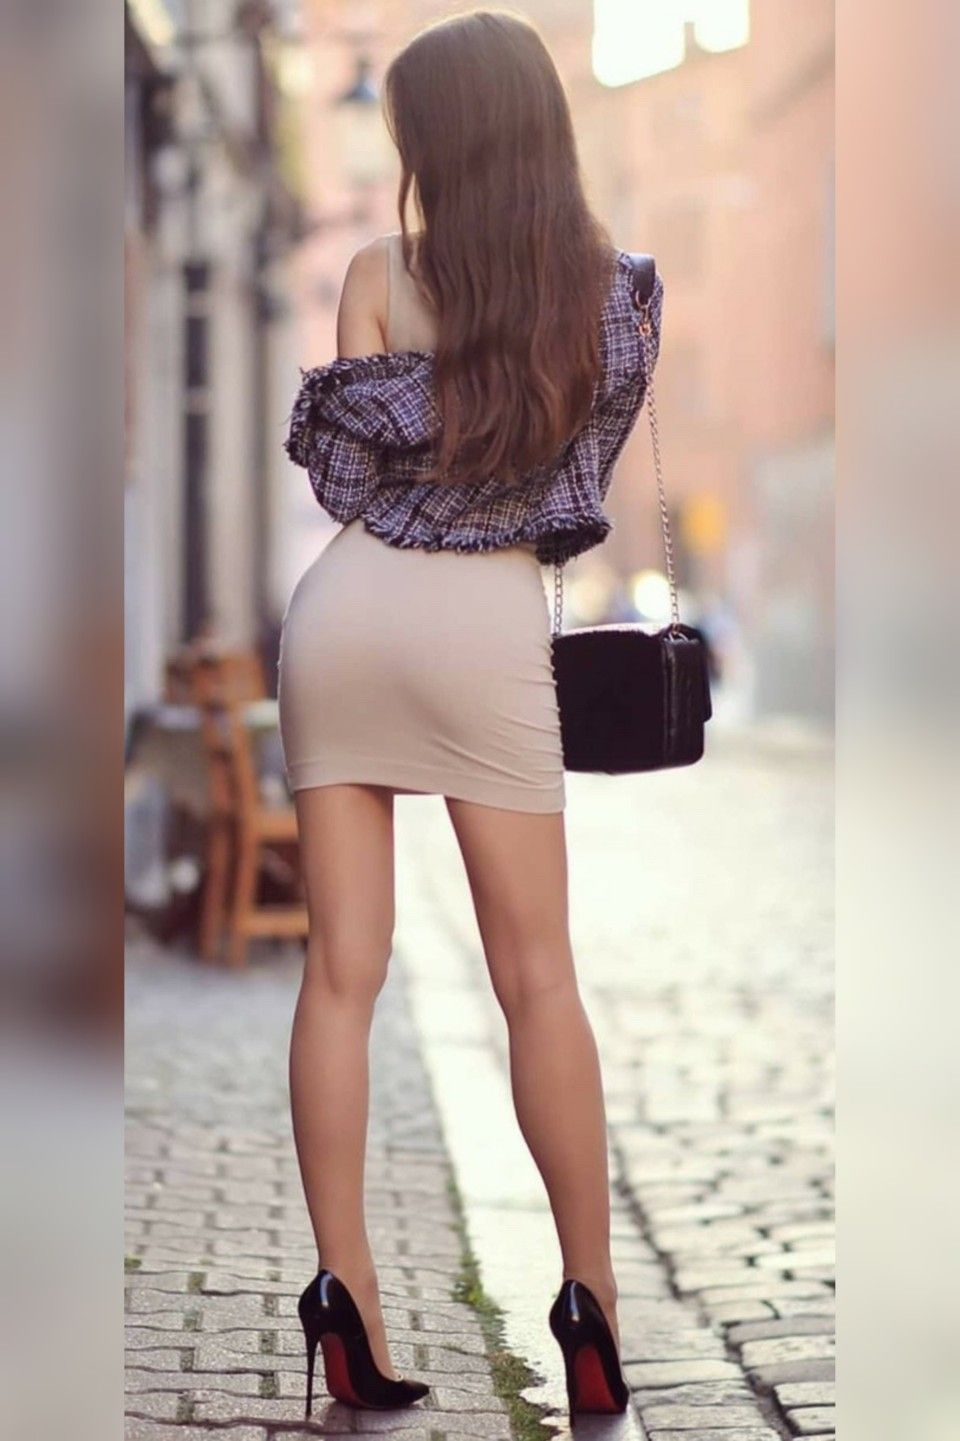 Sexy legs in miniskirt images, stock photos vectors